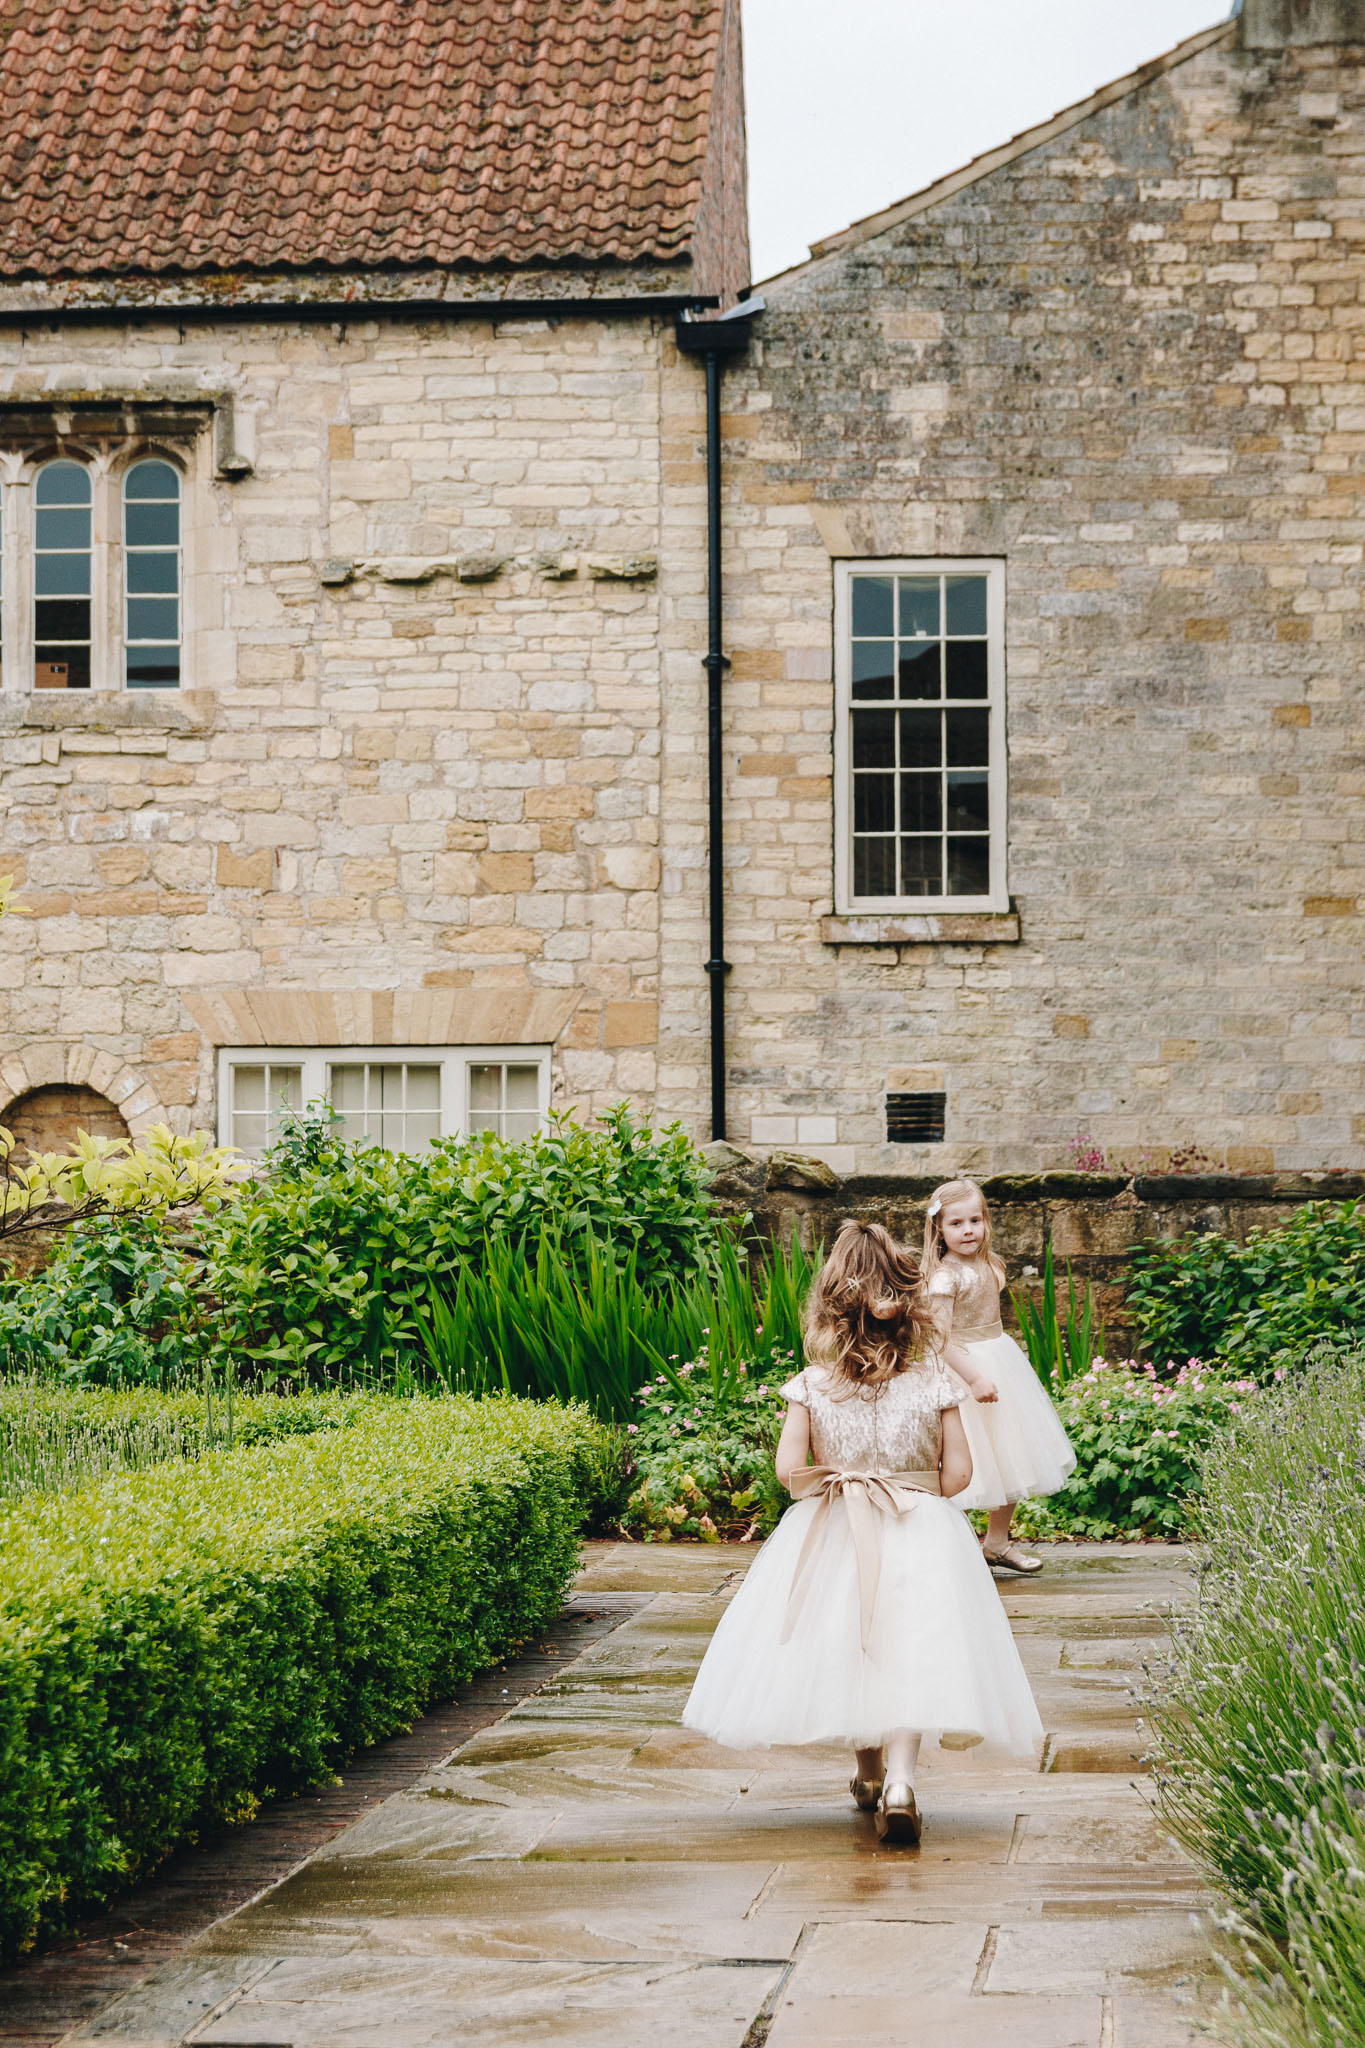 Priory-Cottages-Wetherby-Wedding-Photography-162.jpg